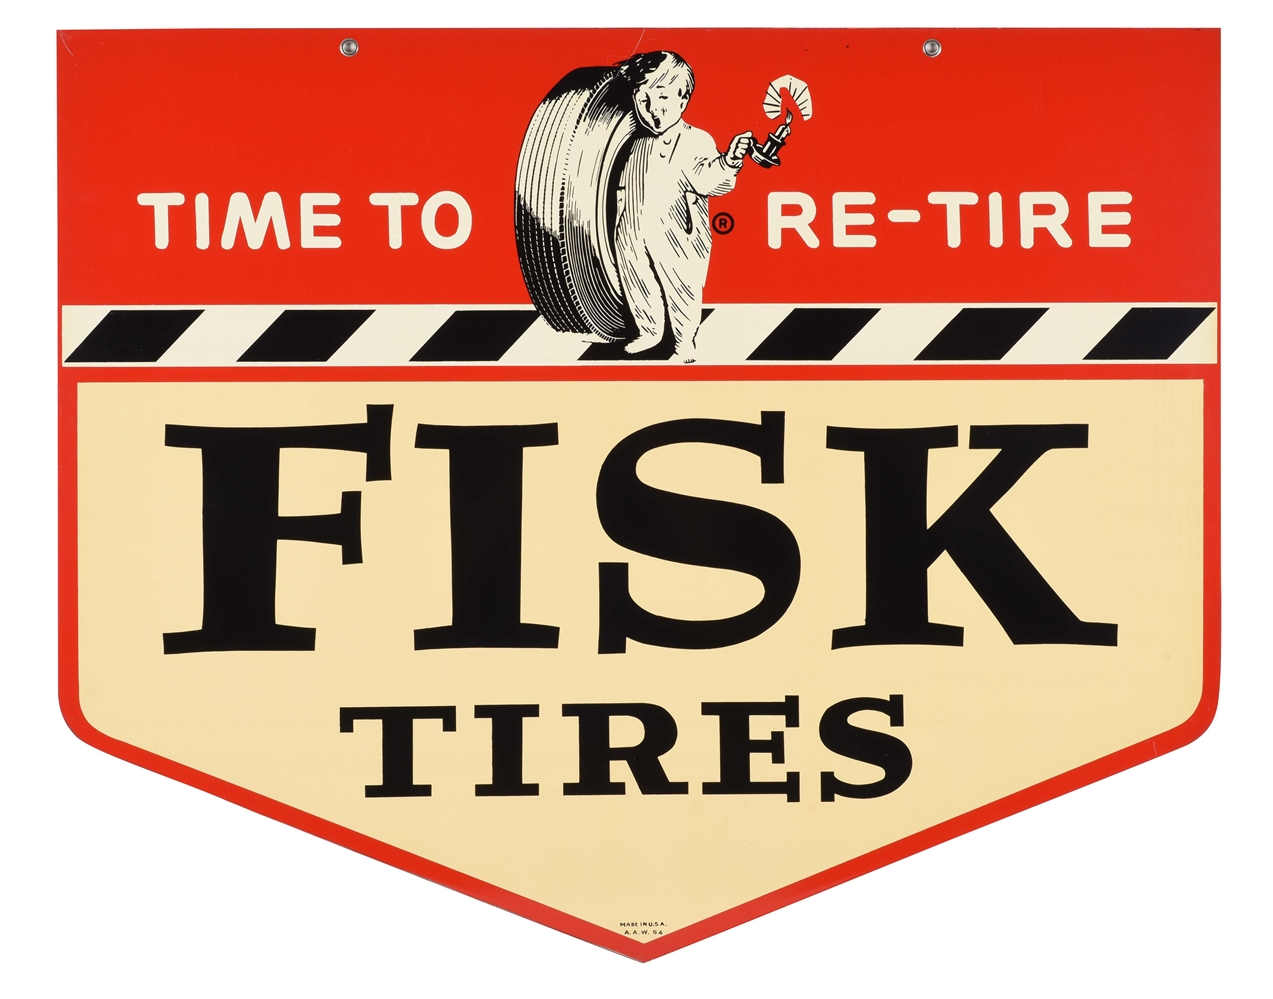 Fisk Tires Time To Re-Tire Tin Sign with Fisk Boy Graphic.